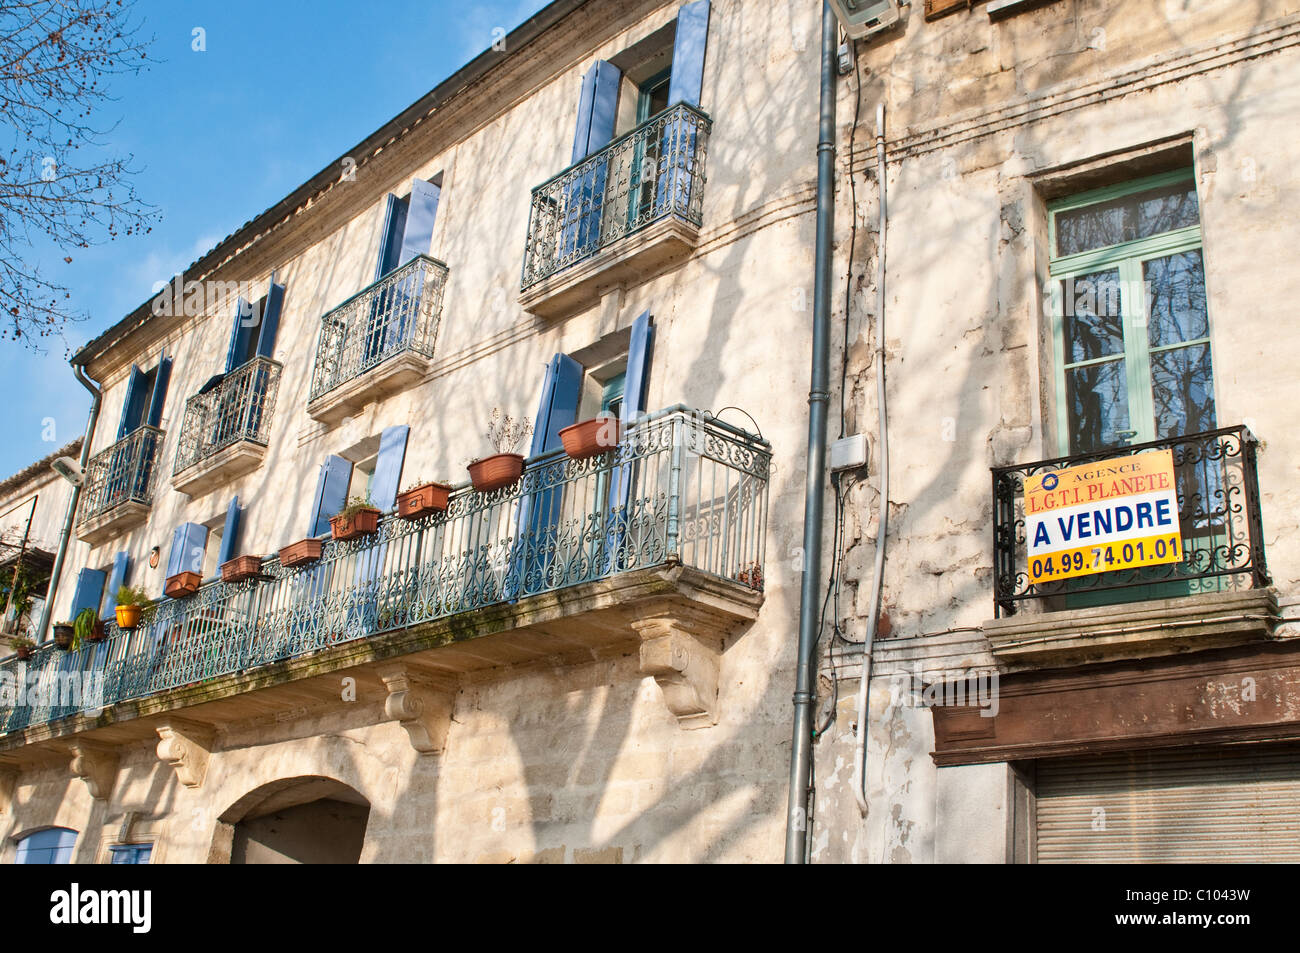 Old house with Sale sign, Sommieres, Gard, Languedoc, France - Stock Image